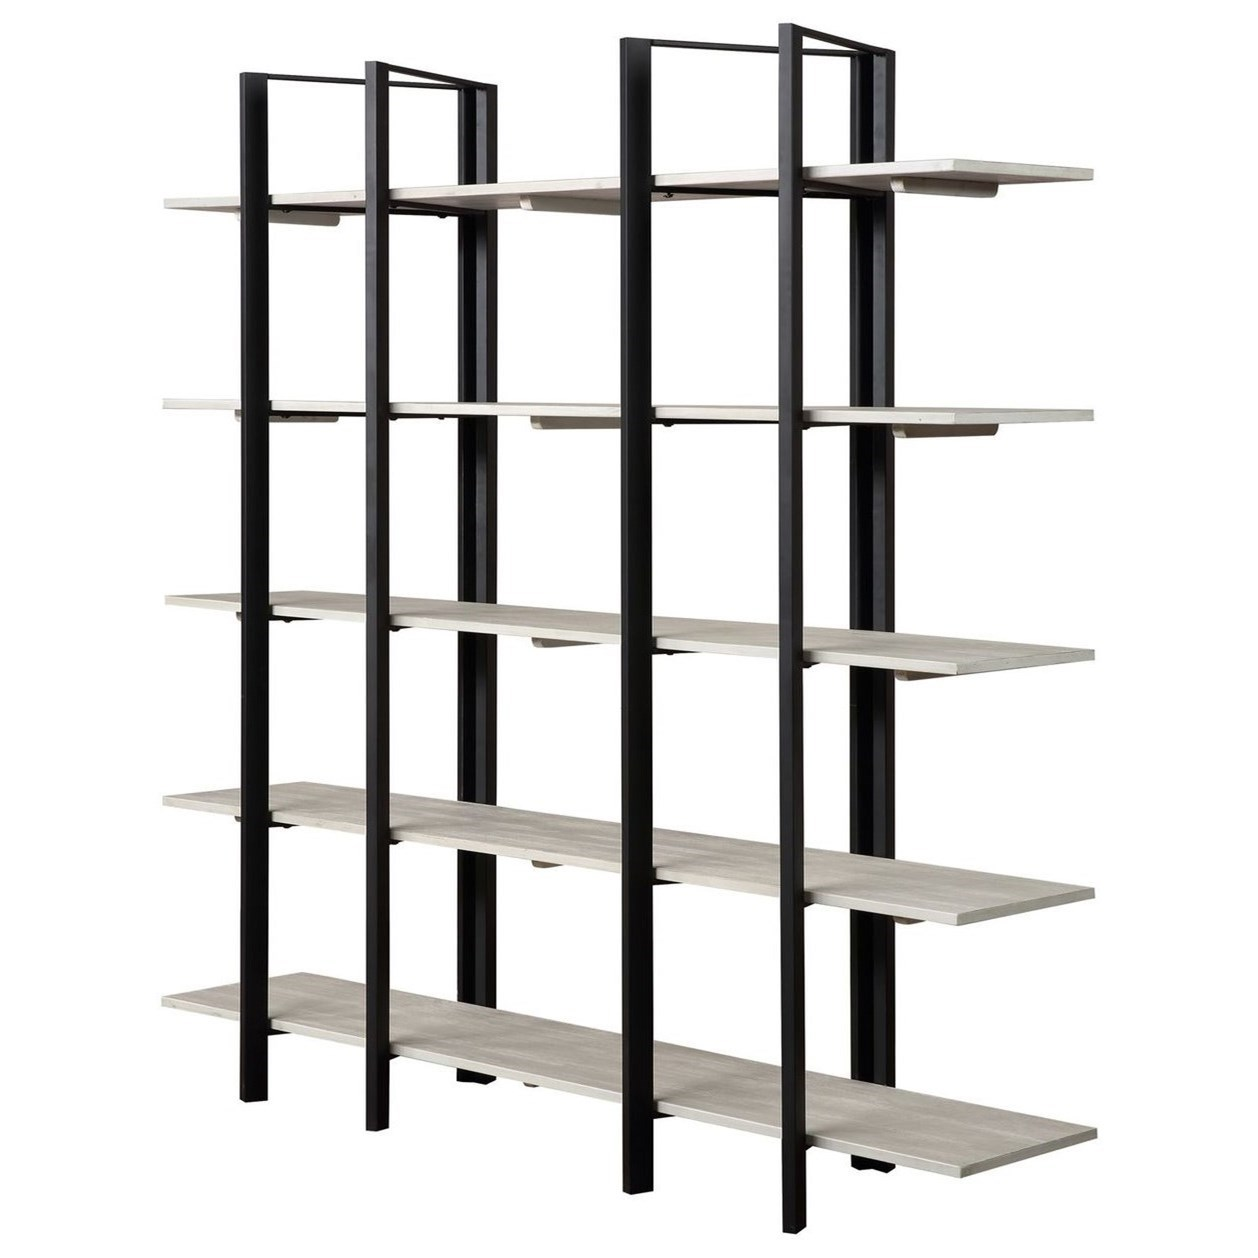 Aspen Court II Etagere by Coast to Coast Imports at Value City Furniture